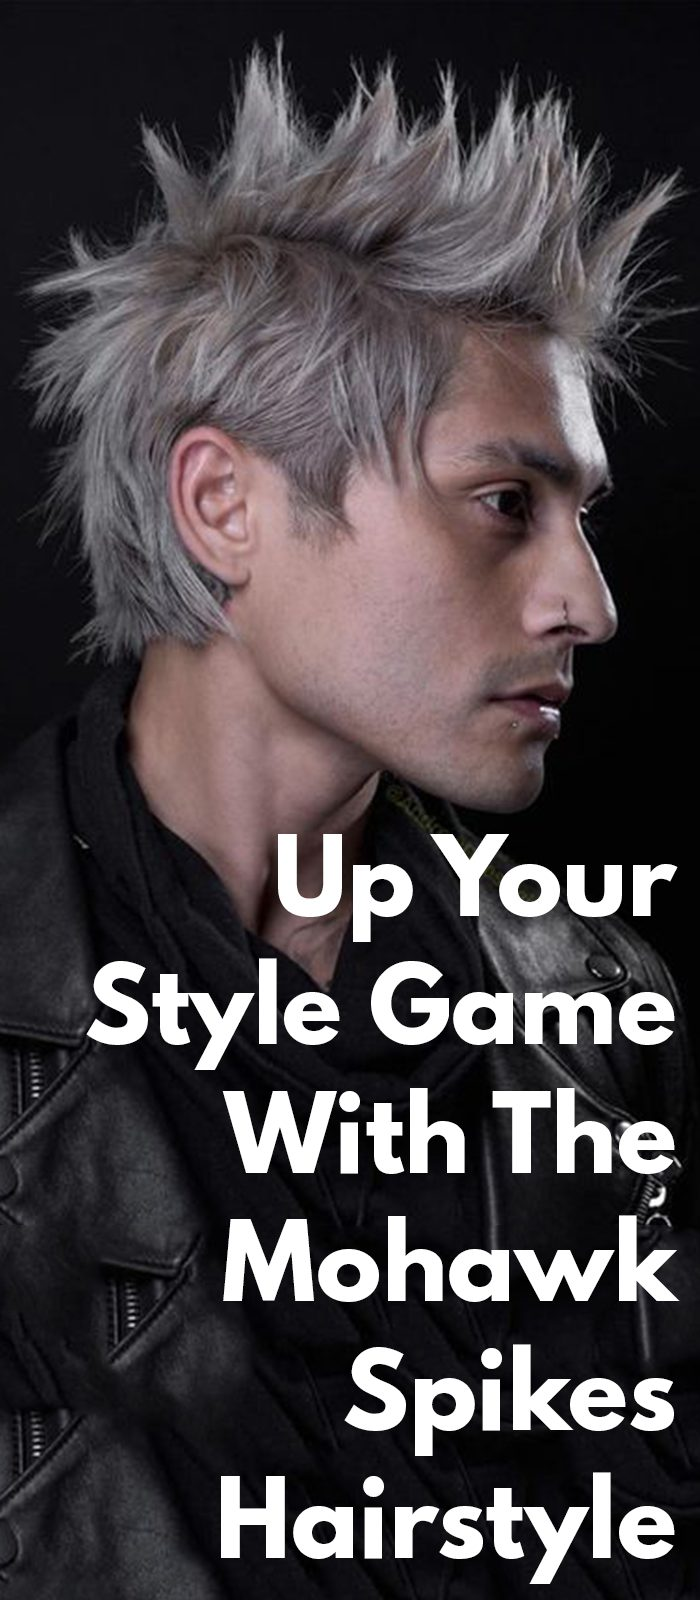 Up Your Style Game With The Mohawk Spikes Hairstyle